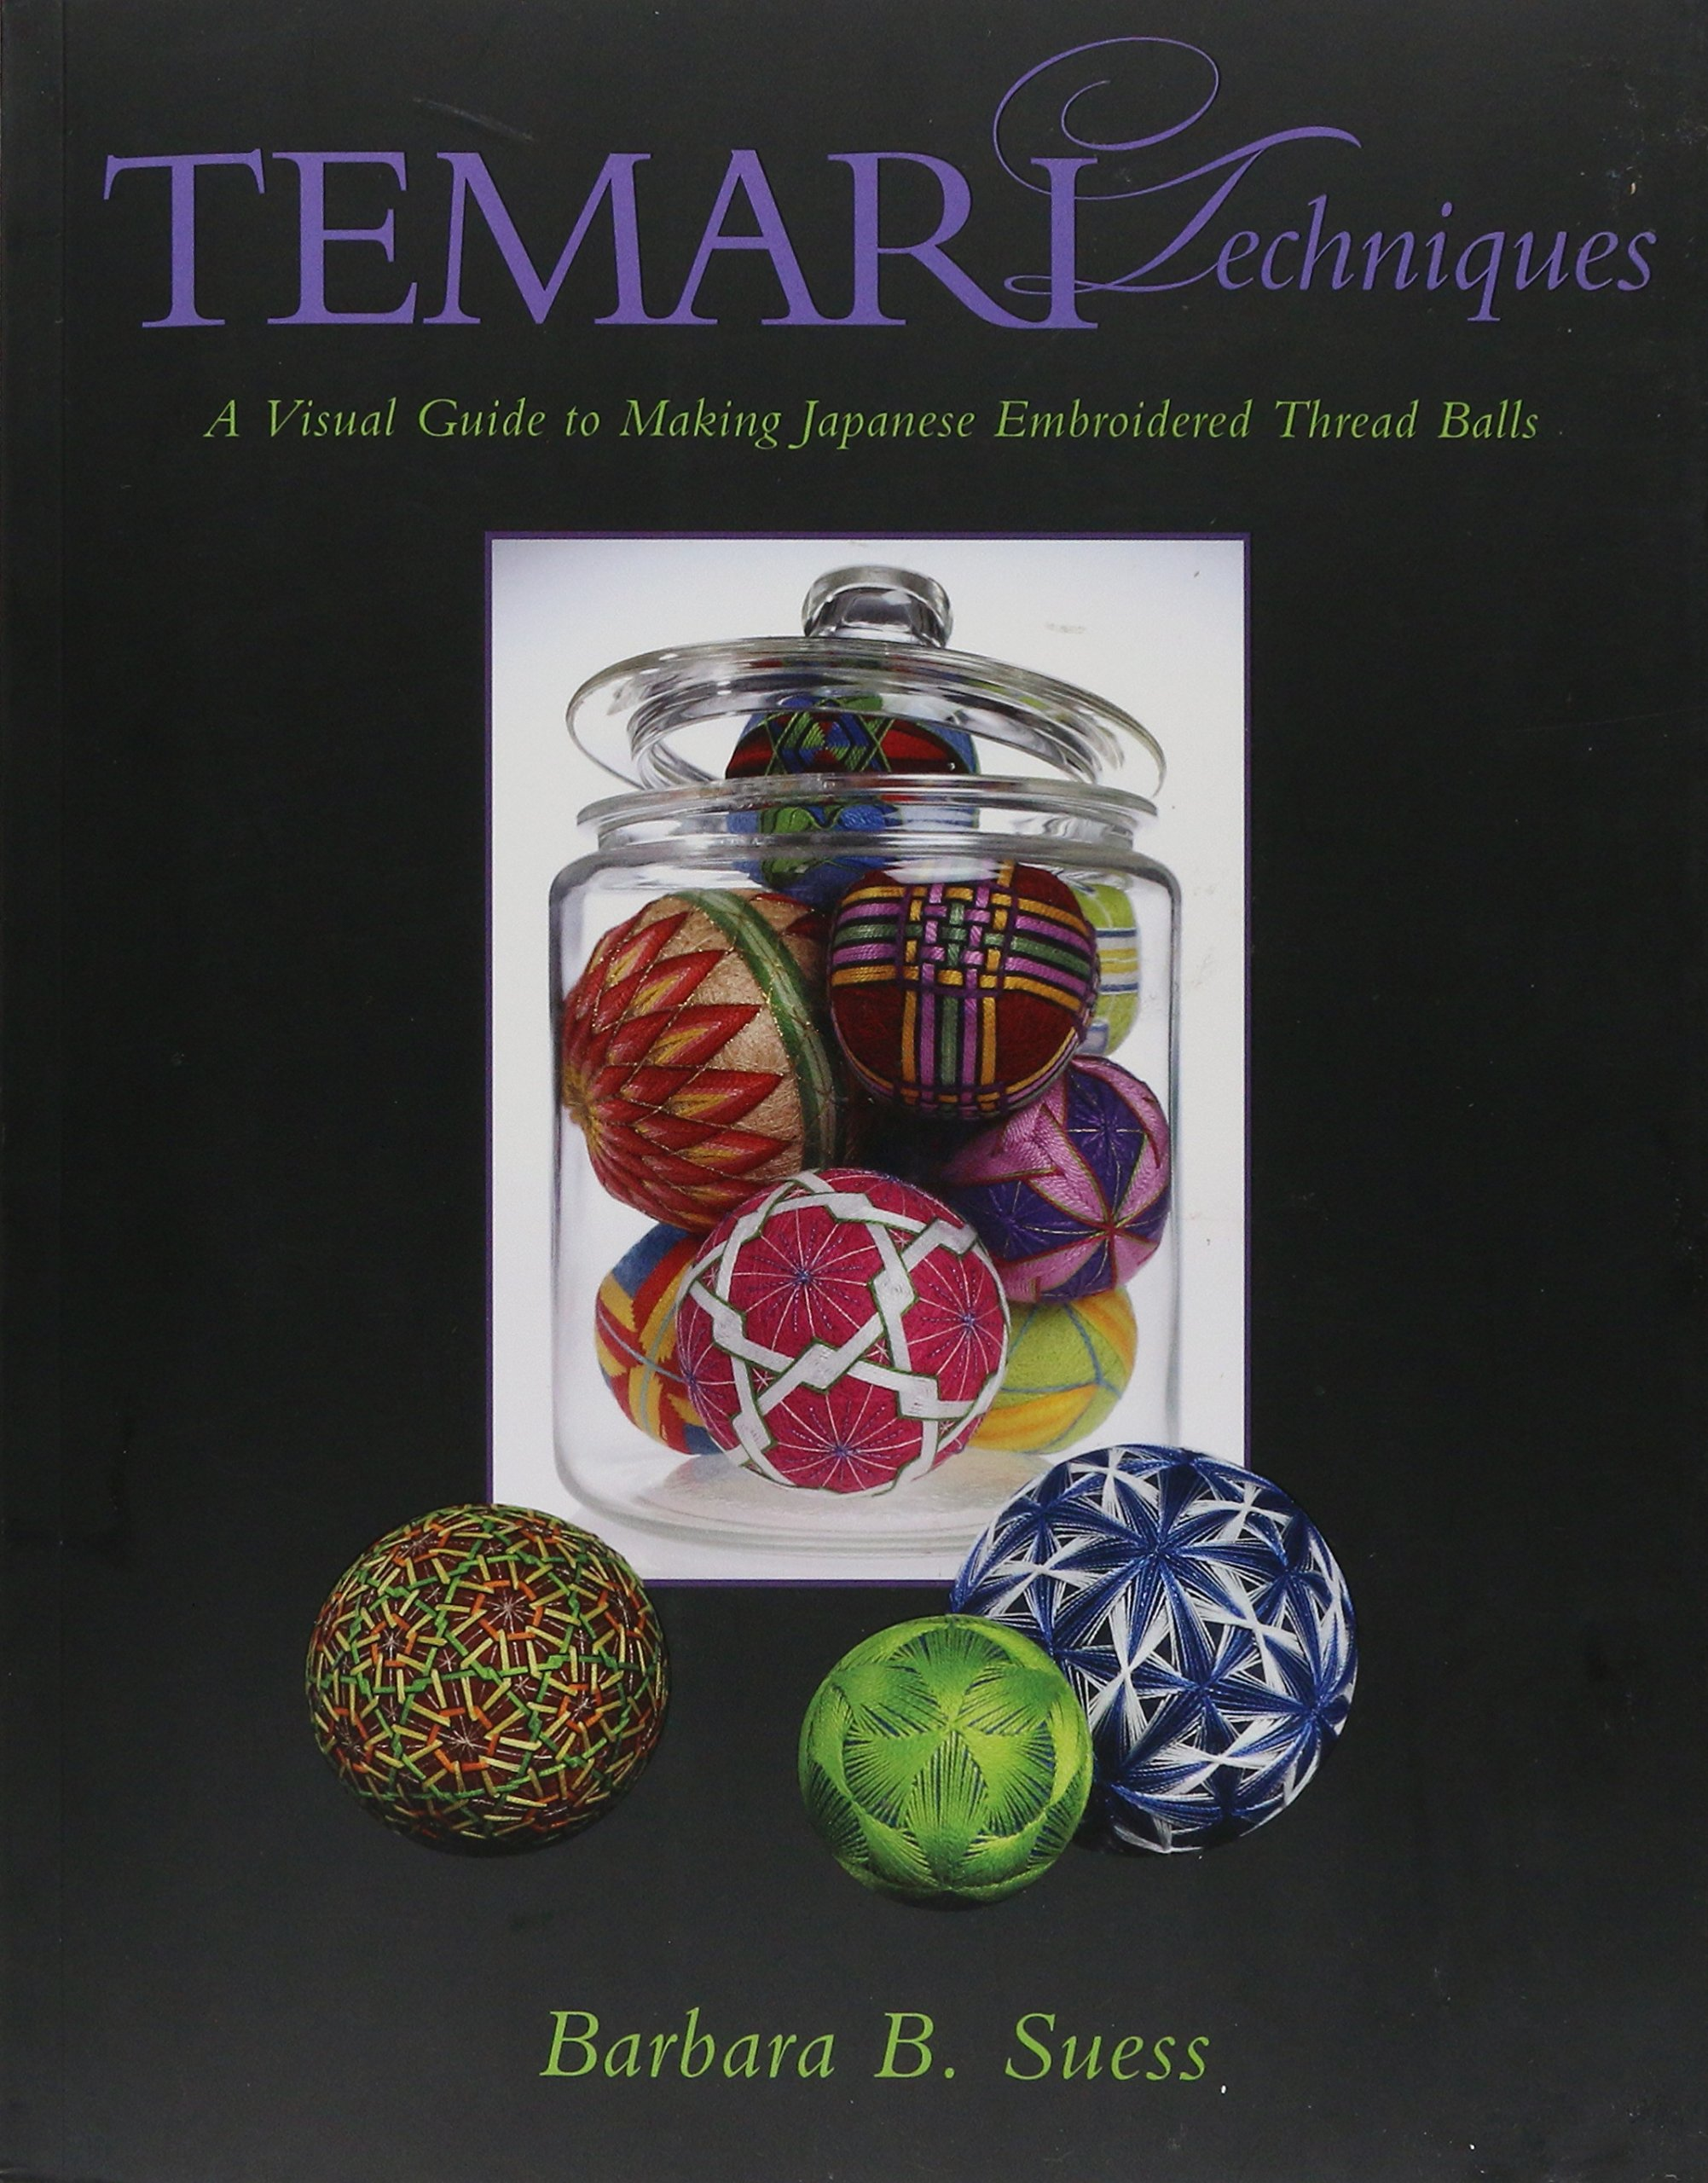 Temari Techniques: A Visual Guide to Making Japanese Embroidered Thread Balls